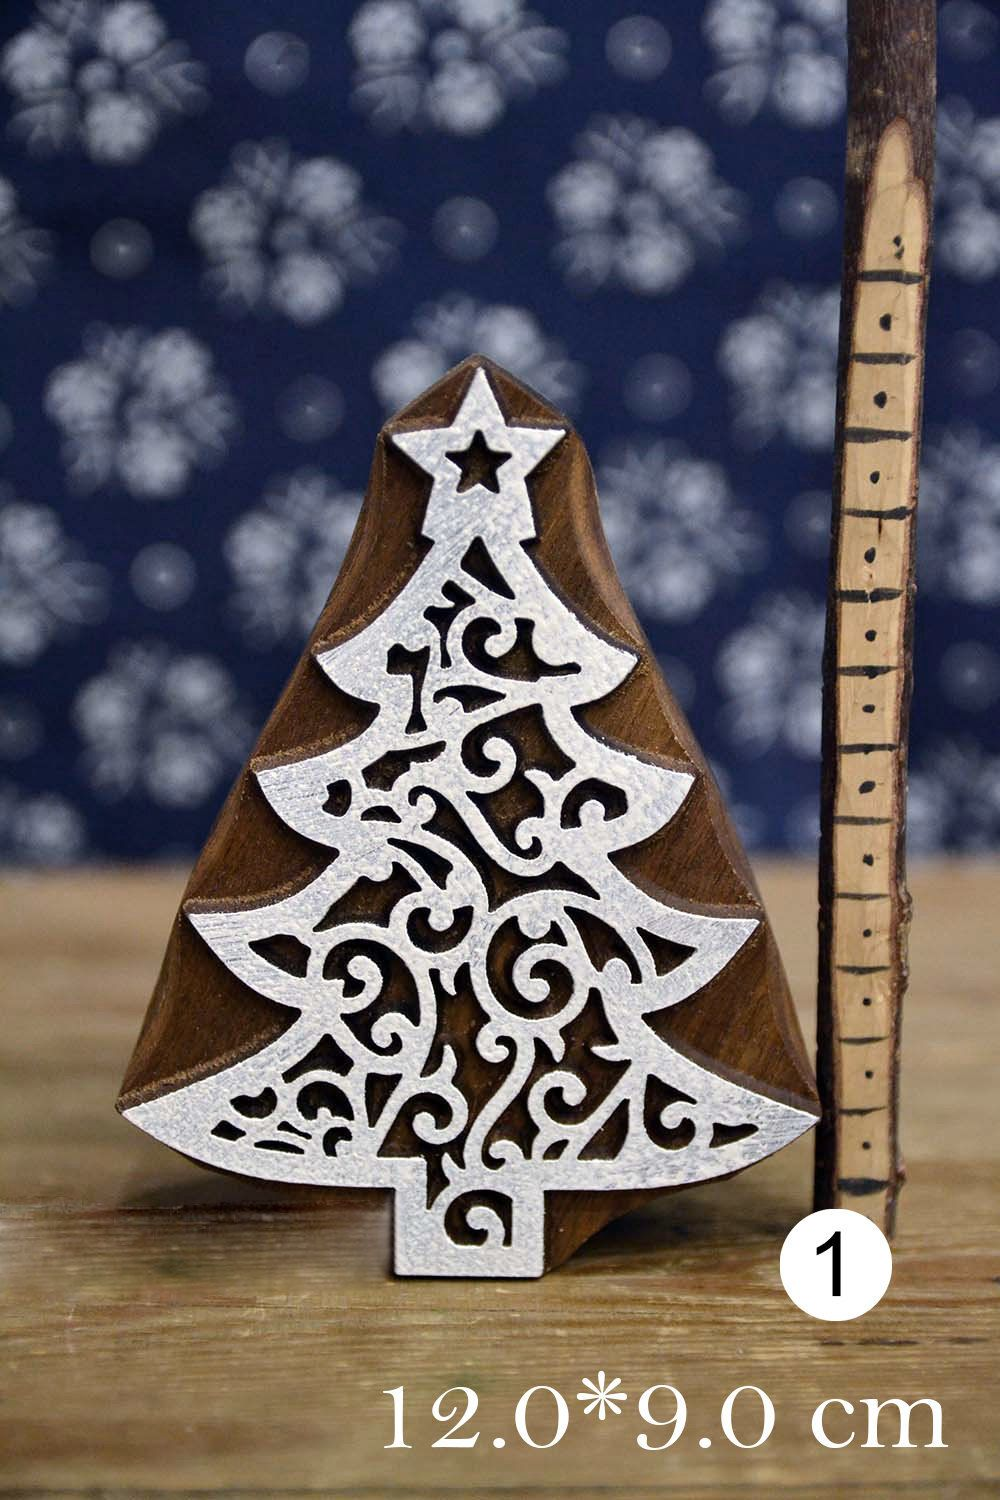 Leather Textile Pottery Gift Idea. Handmade Ethnic Crafts Christmas Mittens Wooden Stamp For Block Printing Cards Print Making